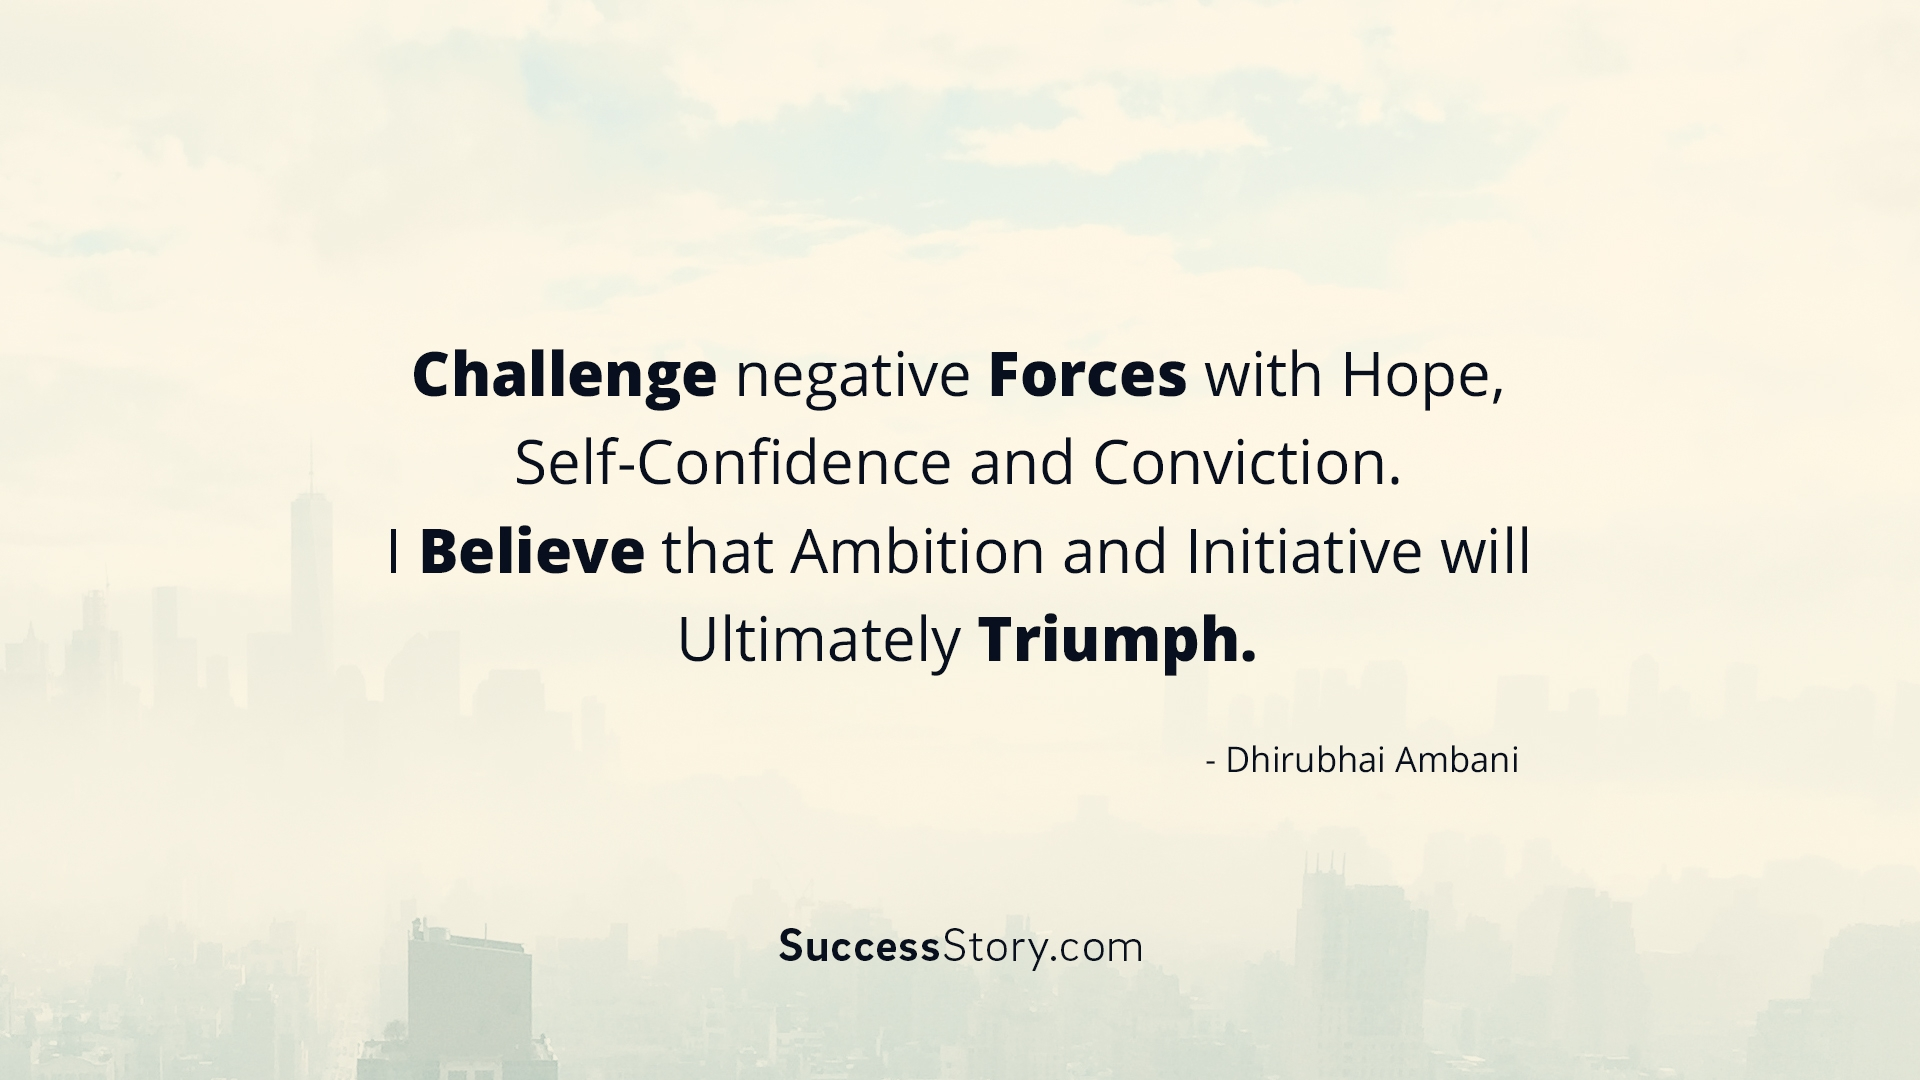 Challenge negative Forces with